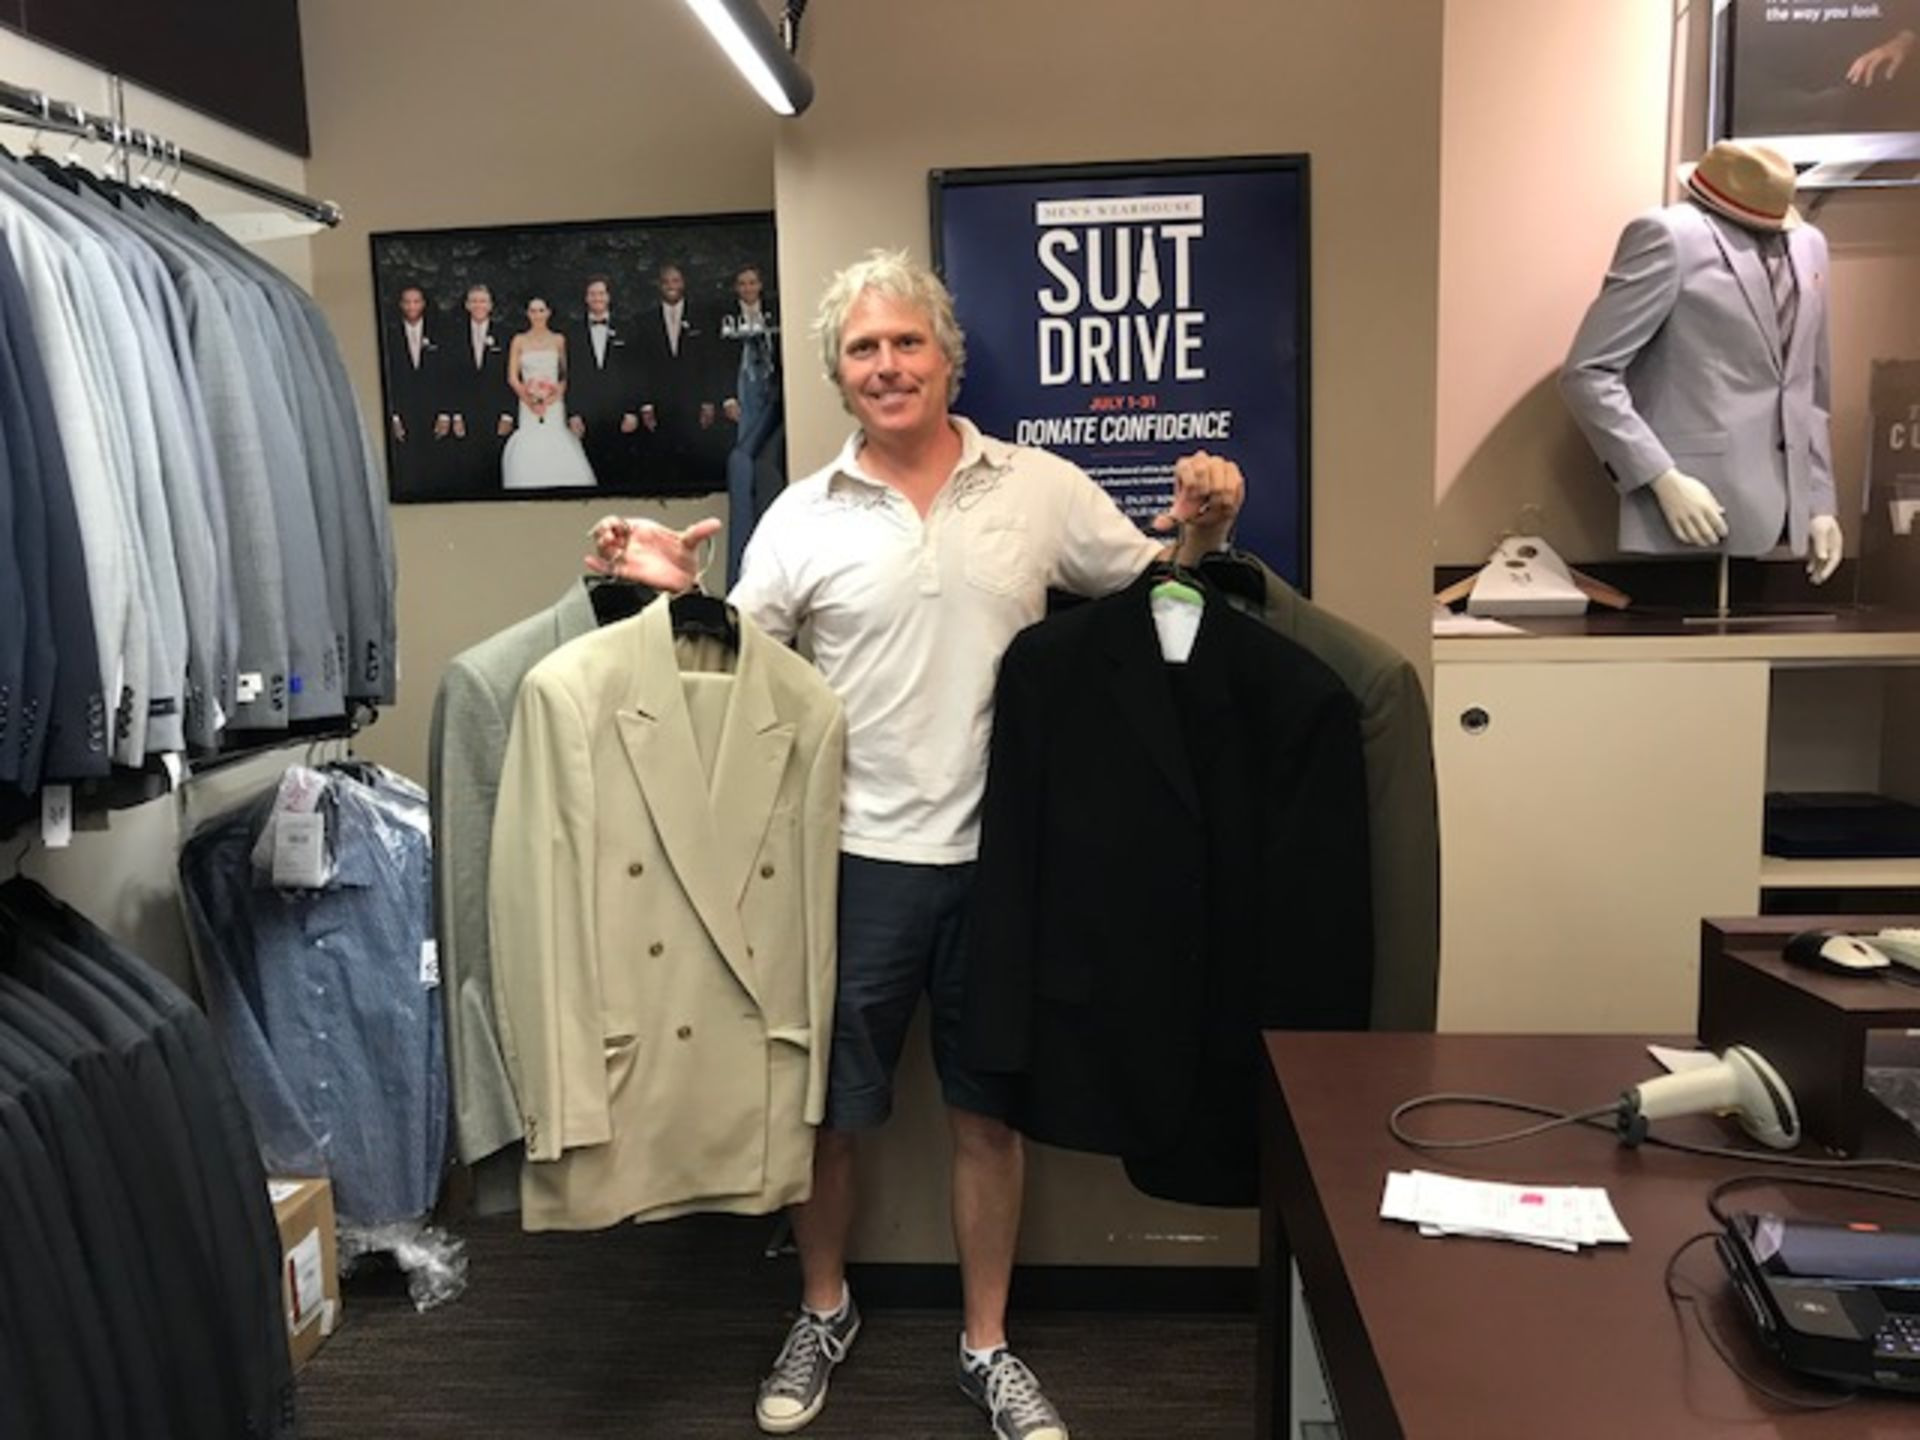 Suit Drive in July!